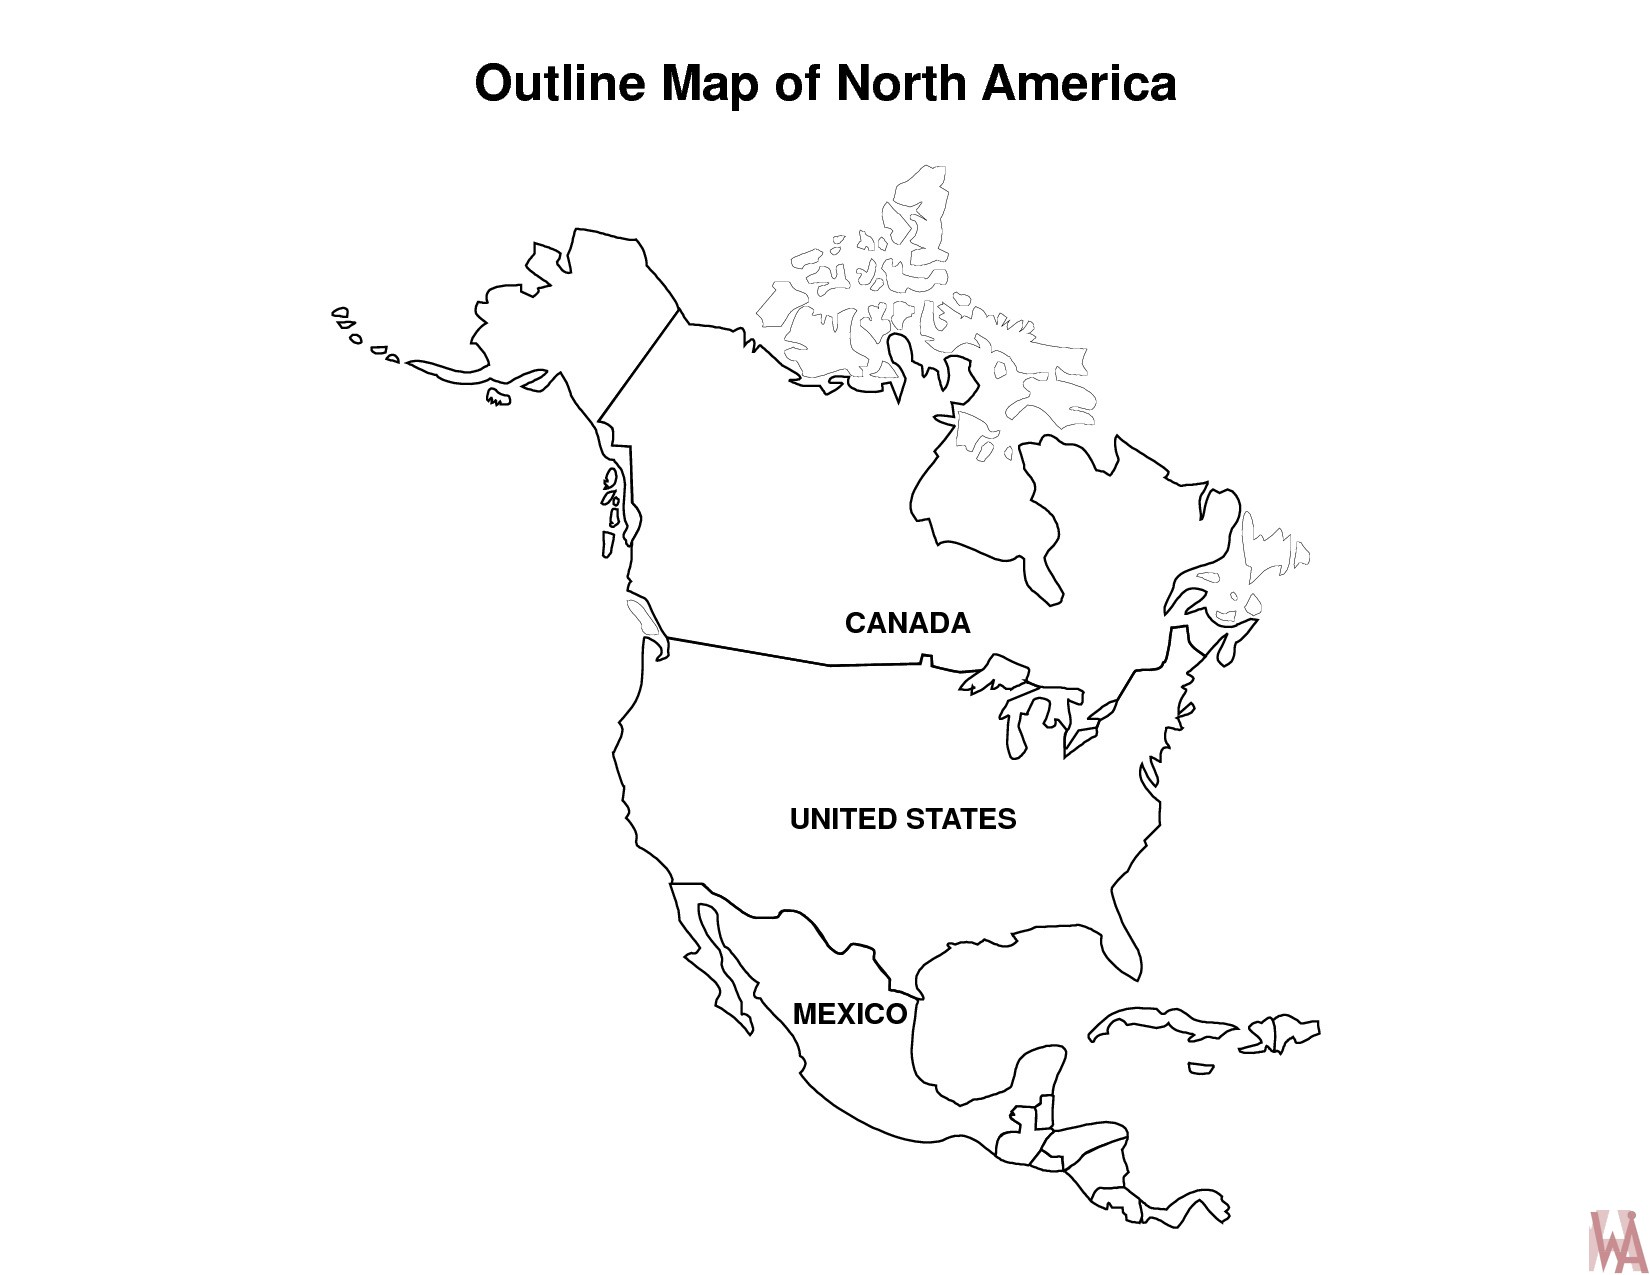 blank map north america Blank Outline Map Of North America Whatsanswer blank map north america